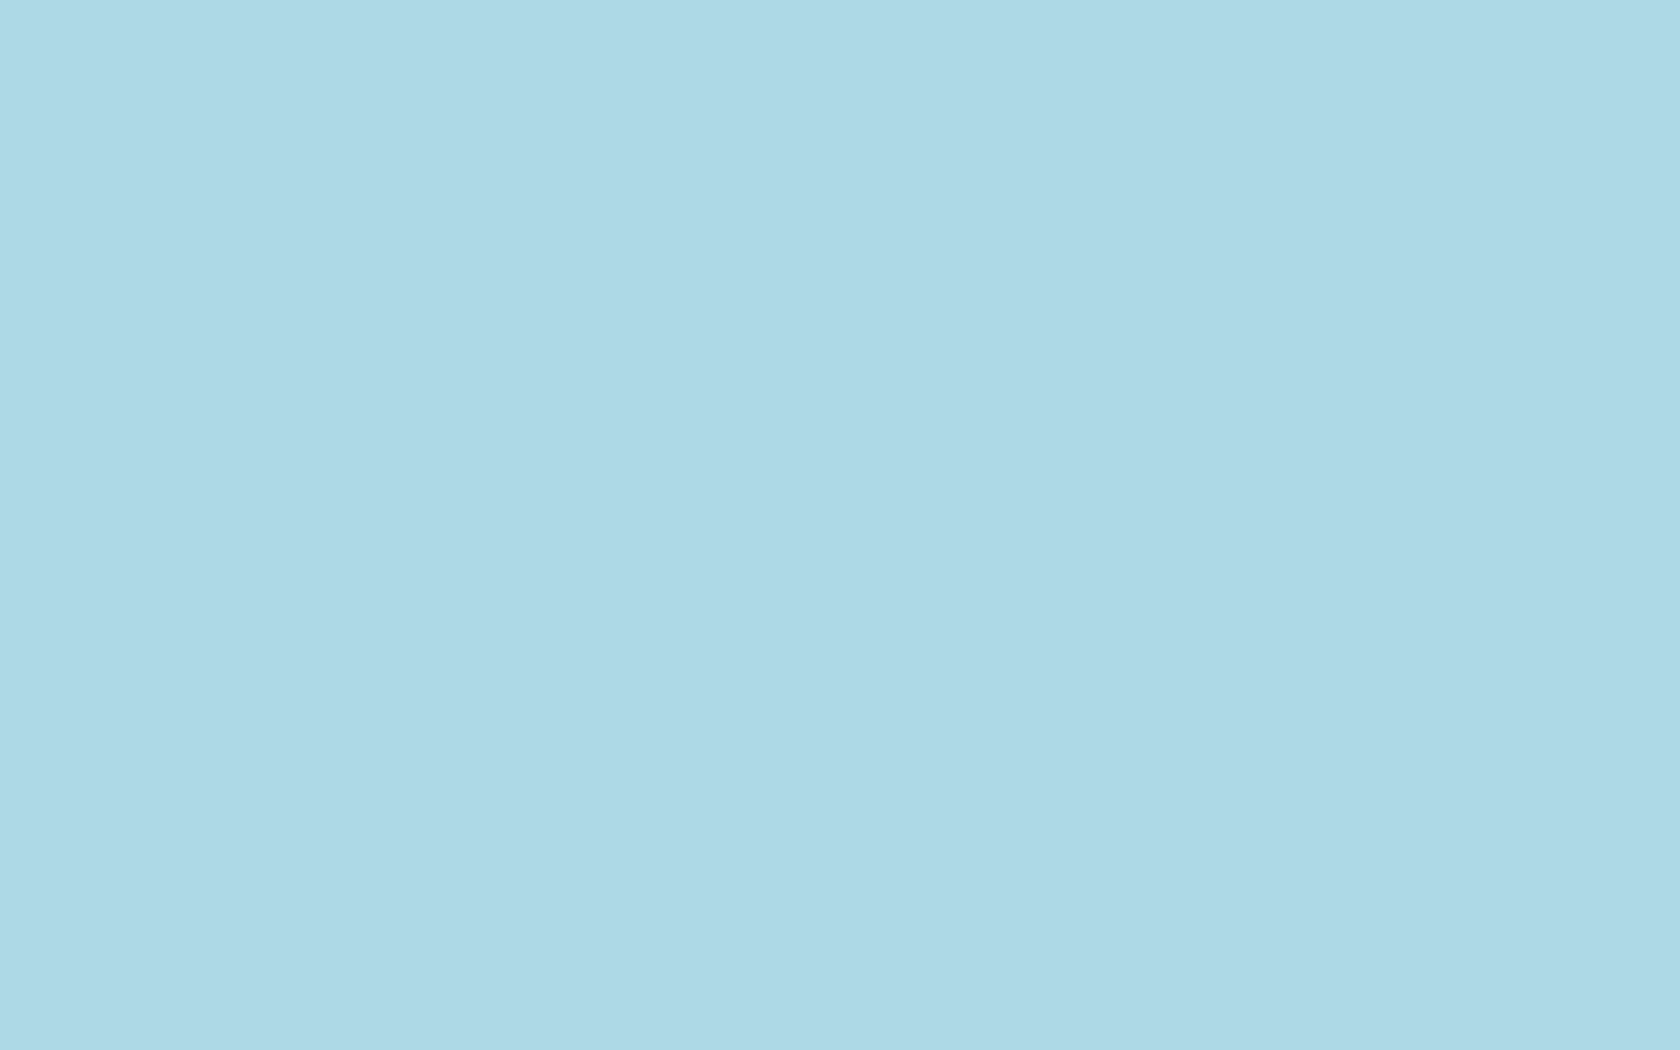 1680x1050 Light Blue Solid Color Background